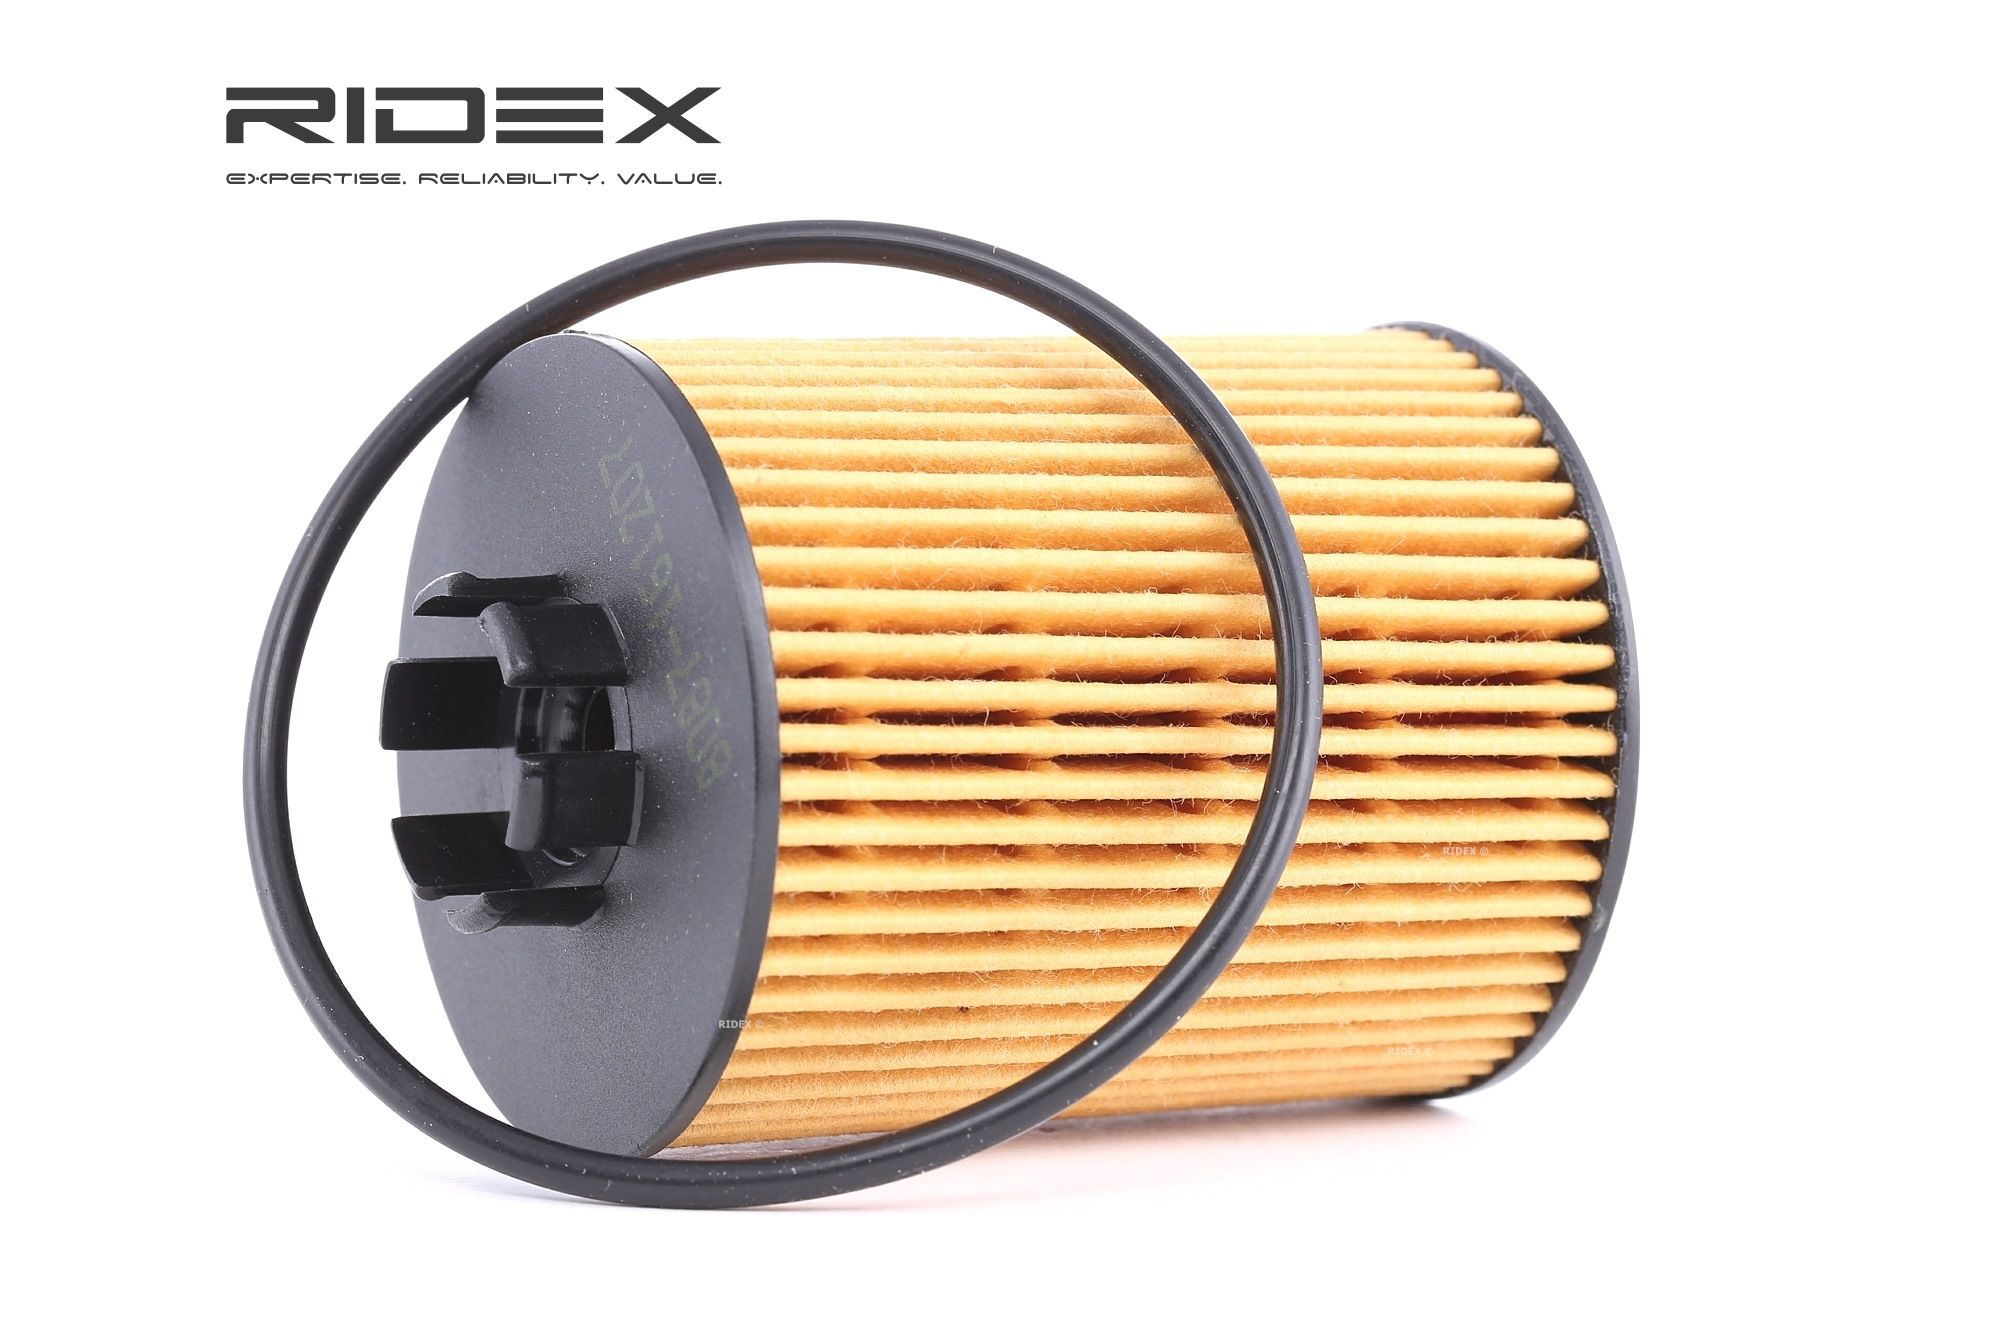 Oil filter 7O0049 RIDEX — only new parts